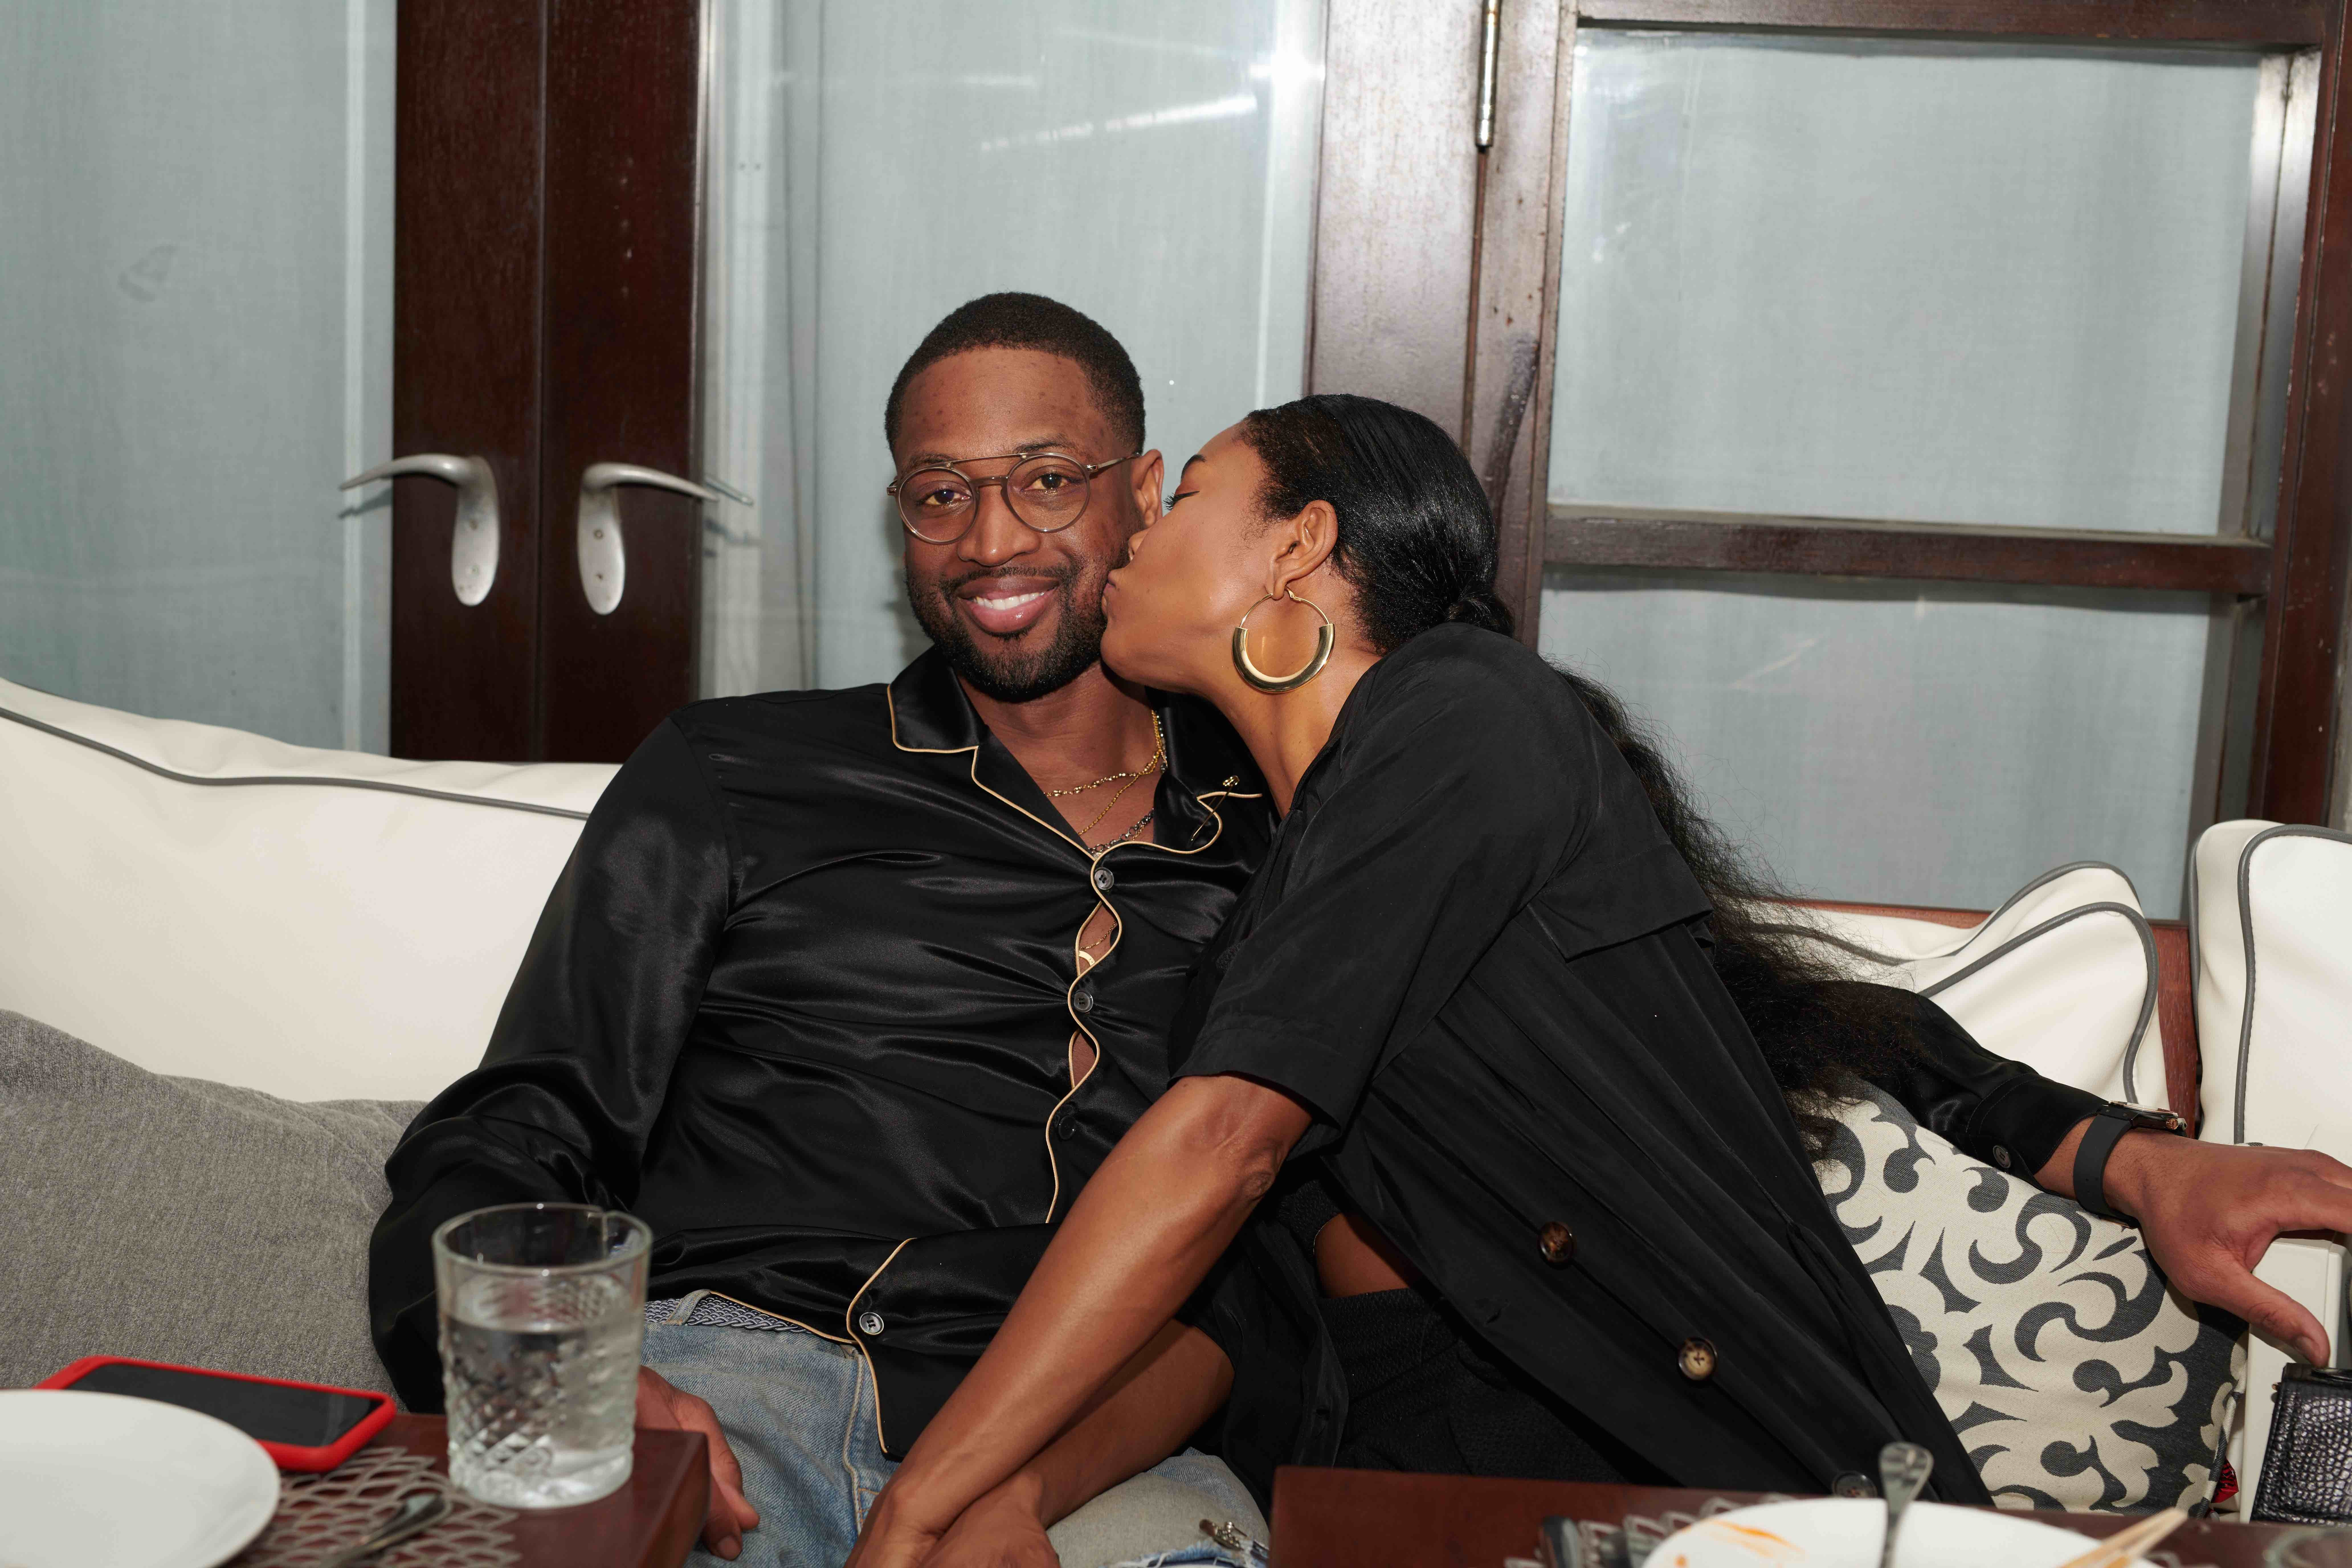 Gabrielle Union pecks husband Dwyane Wade on the cheek during a night out at Leynia restaurant at the Delano hotel in Miami on Feb. 9, 2018.